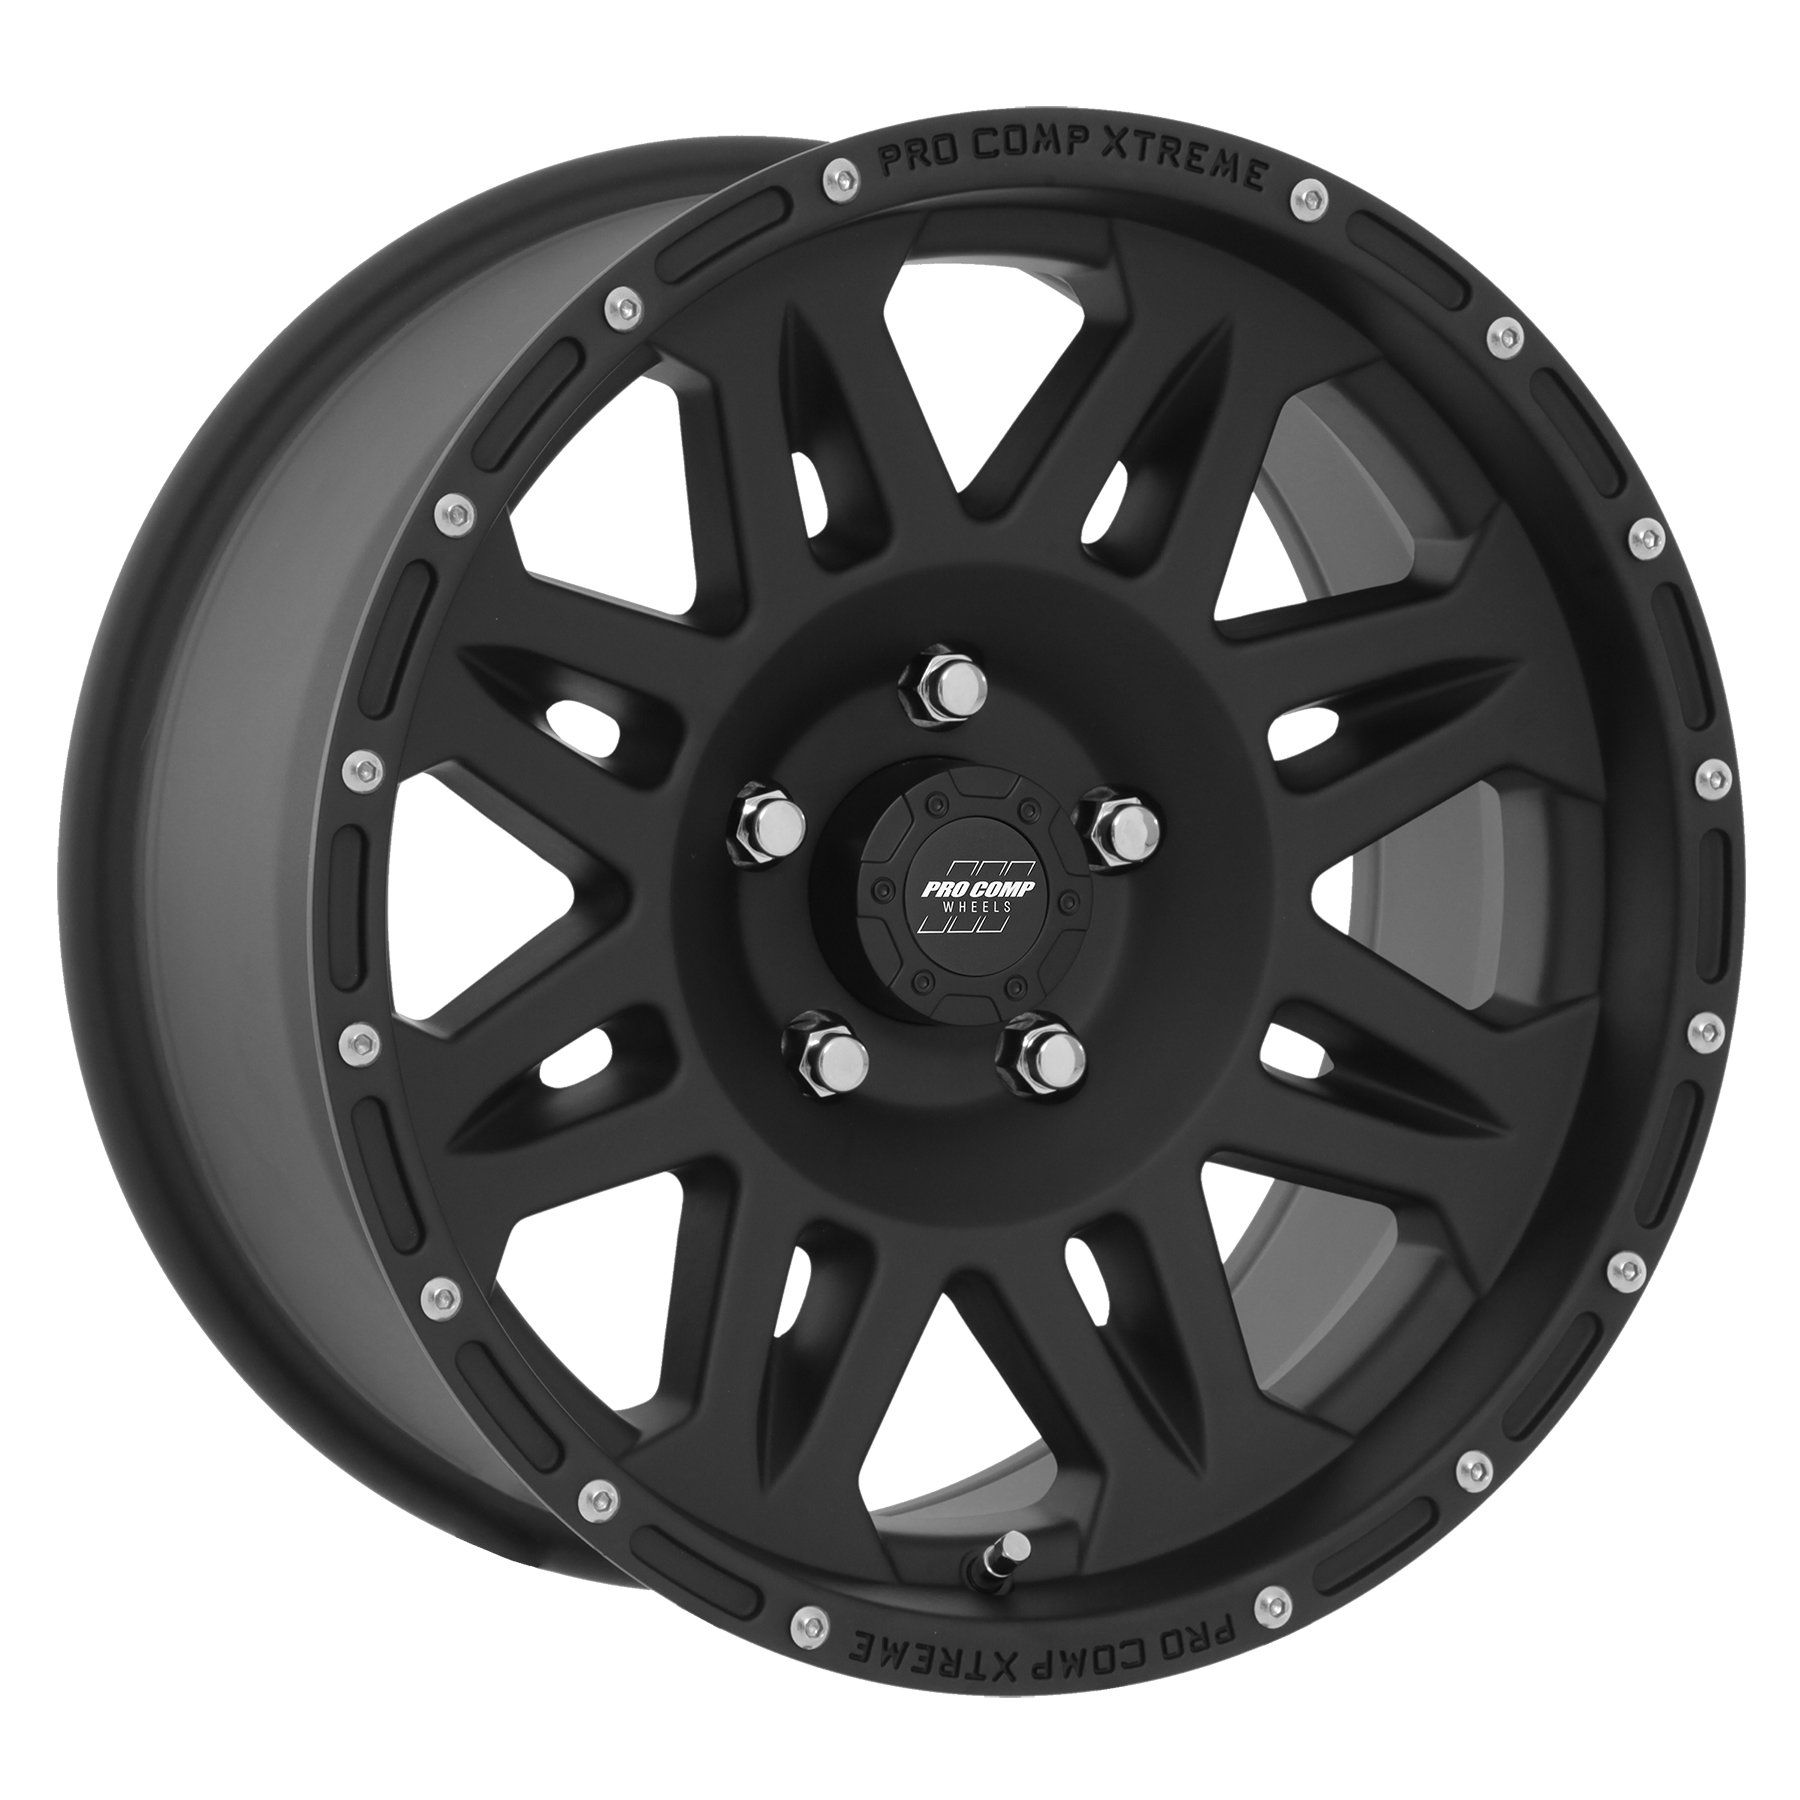 The Pro Comp Series 05 Wheel's gusseted spoke design and